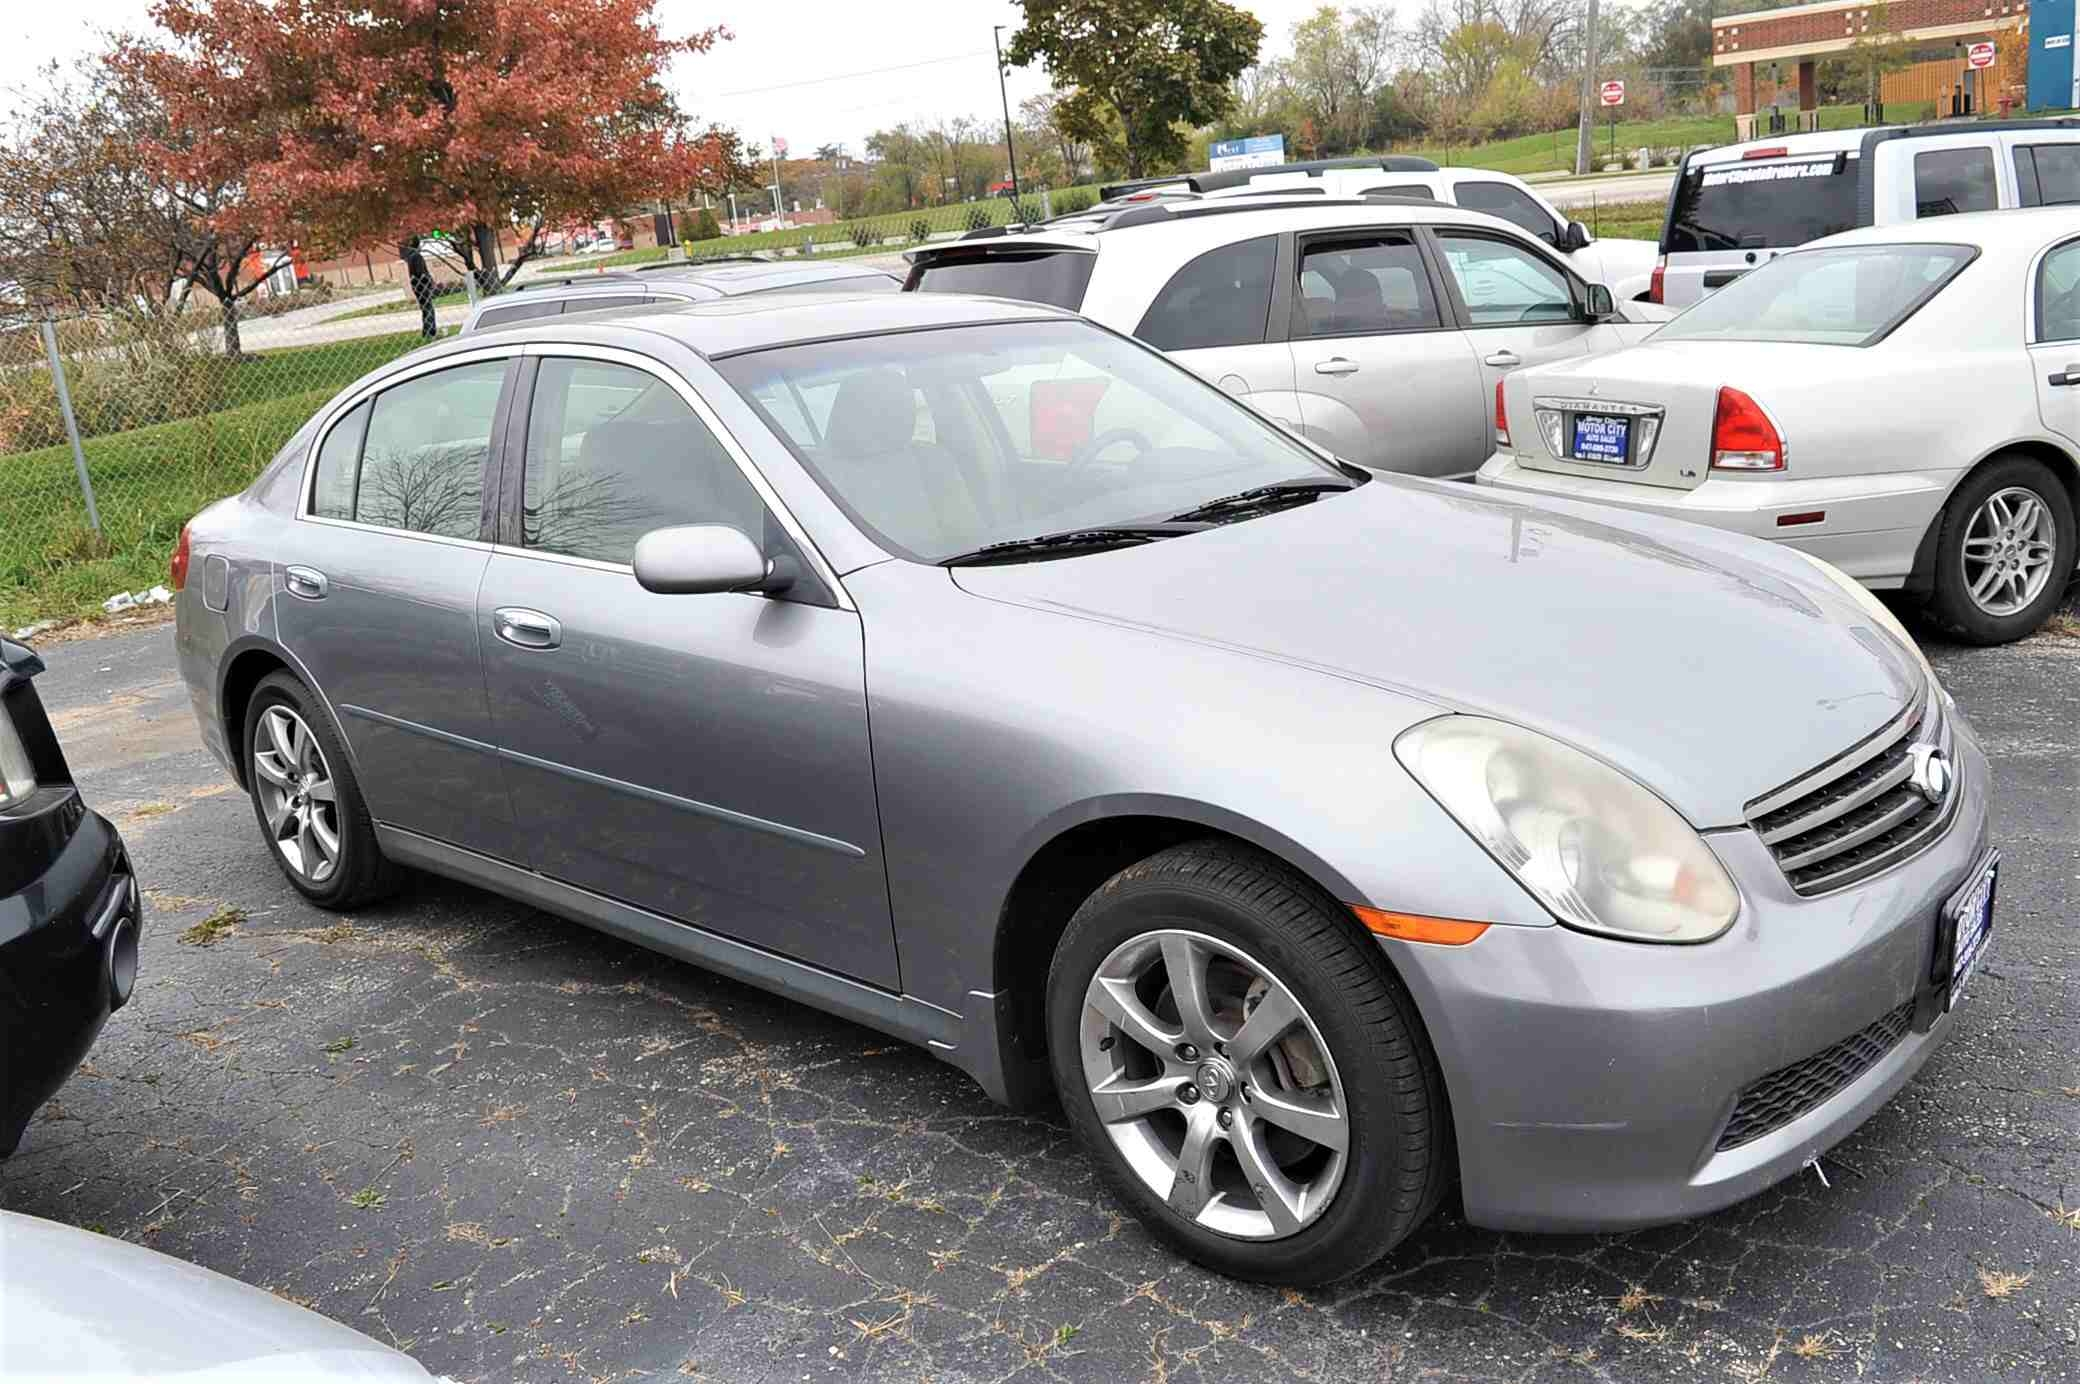 2006 Infiniti G35X Gray Sedan Used Car Sale Bannockburn Barrington Beach Park